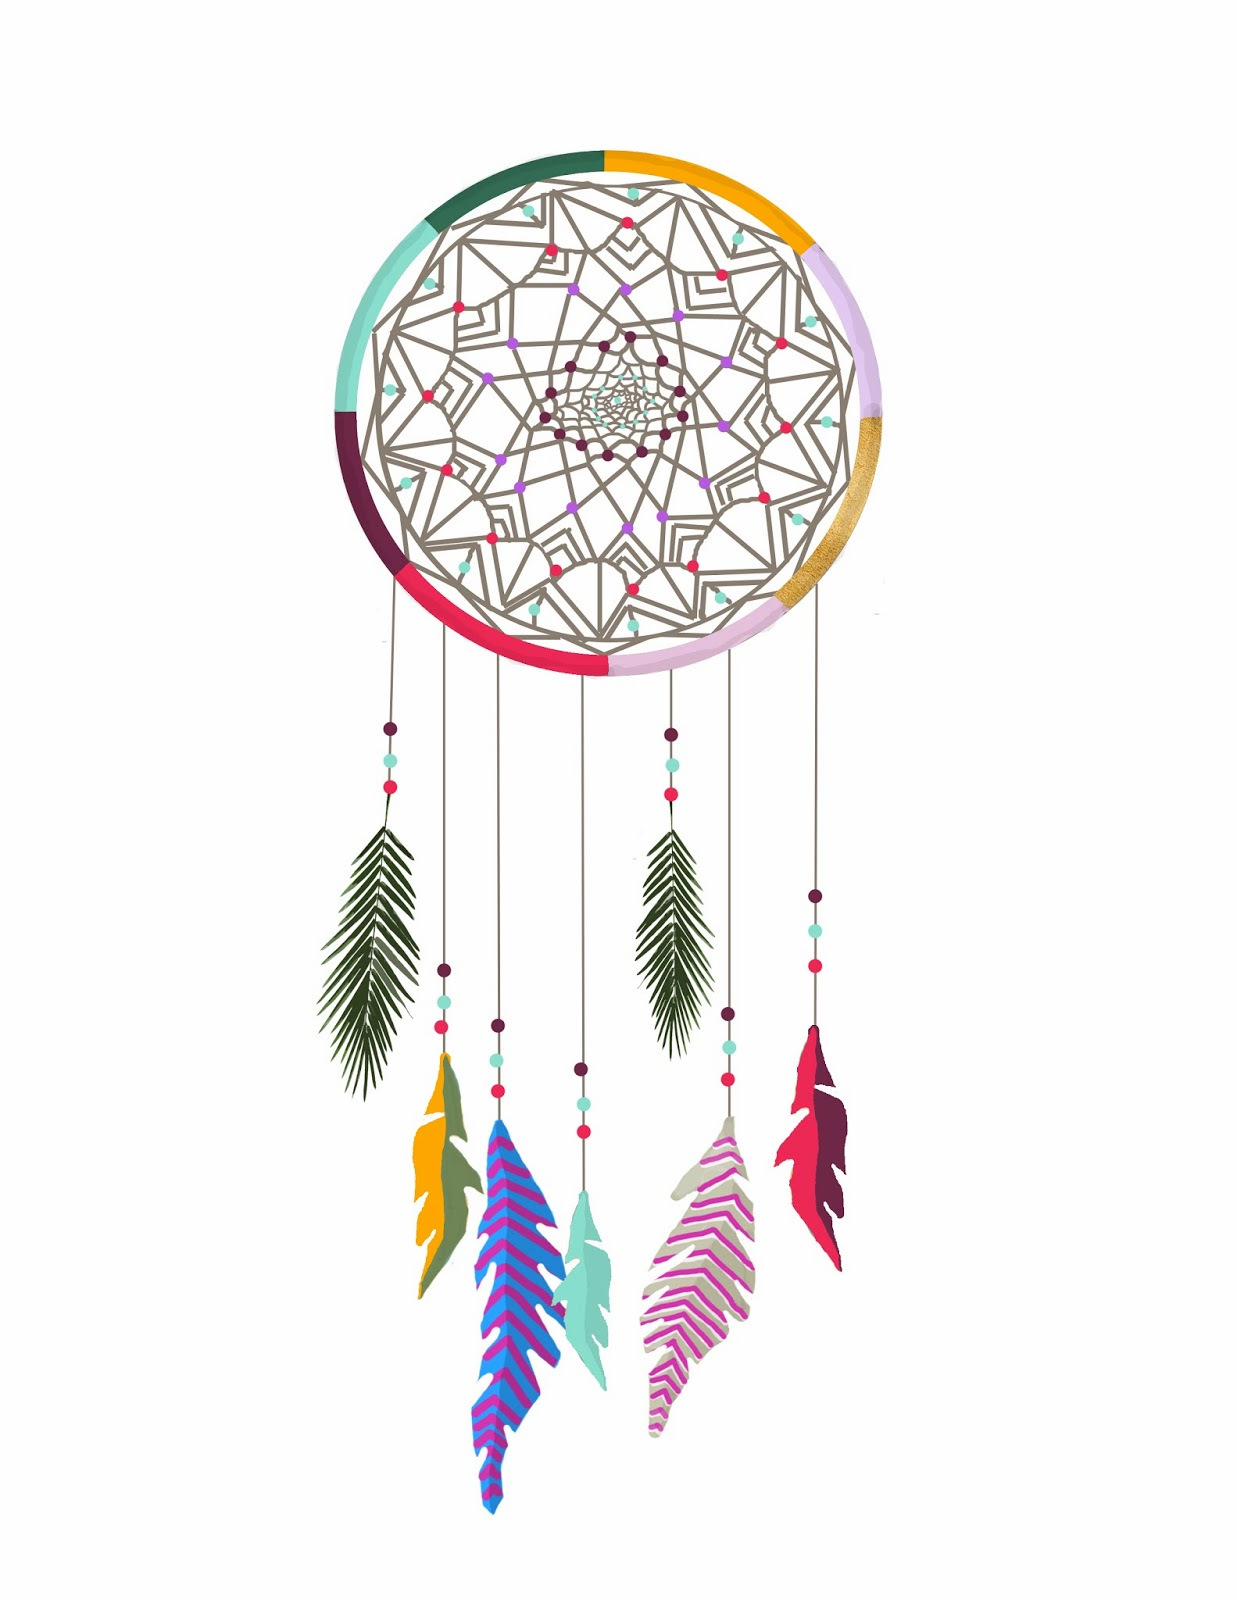 Colorful Dreamcatcher Tumblr dream catcher tumblr backgrounds related ...